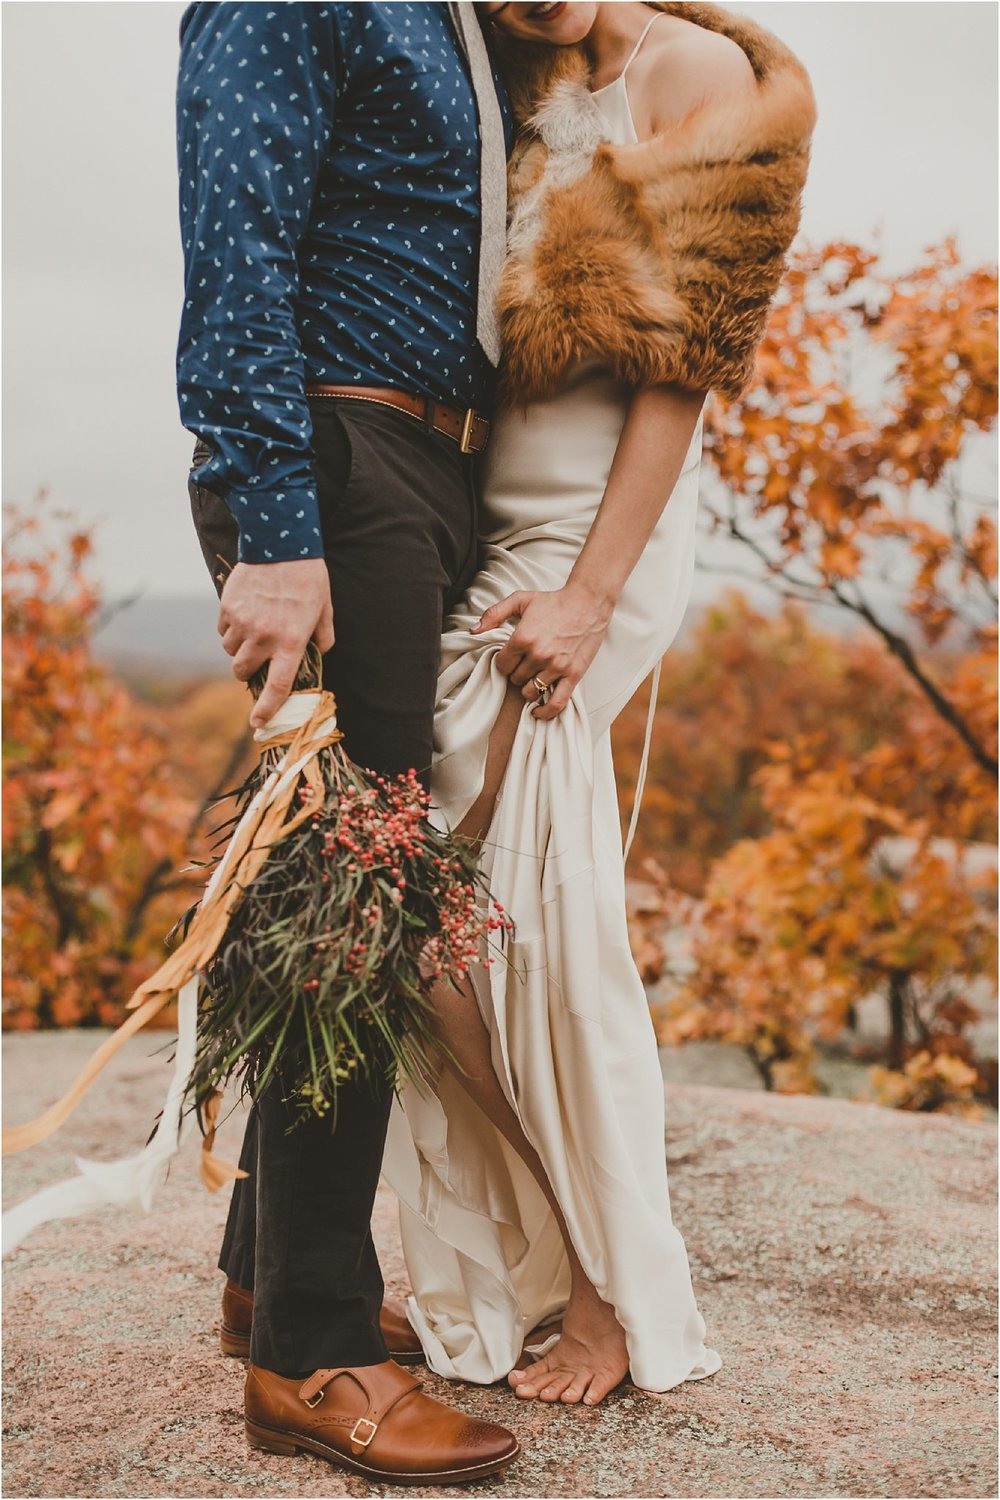 PattengalePhotography_boho_AdventureBride_StyledShoot_ElephantRockStatePark_StLouis_Bridal_Wedding_Wes&Jess__0007.jpg